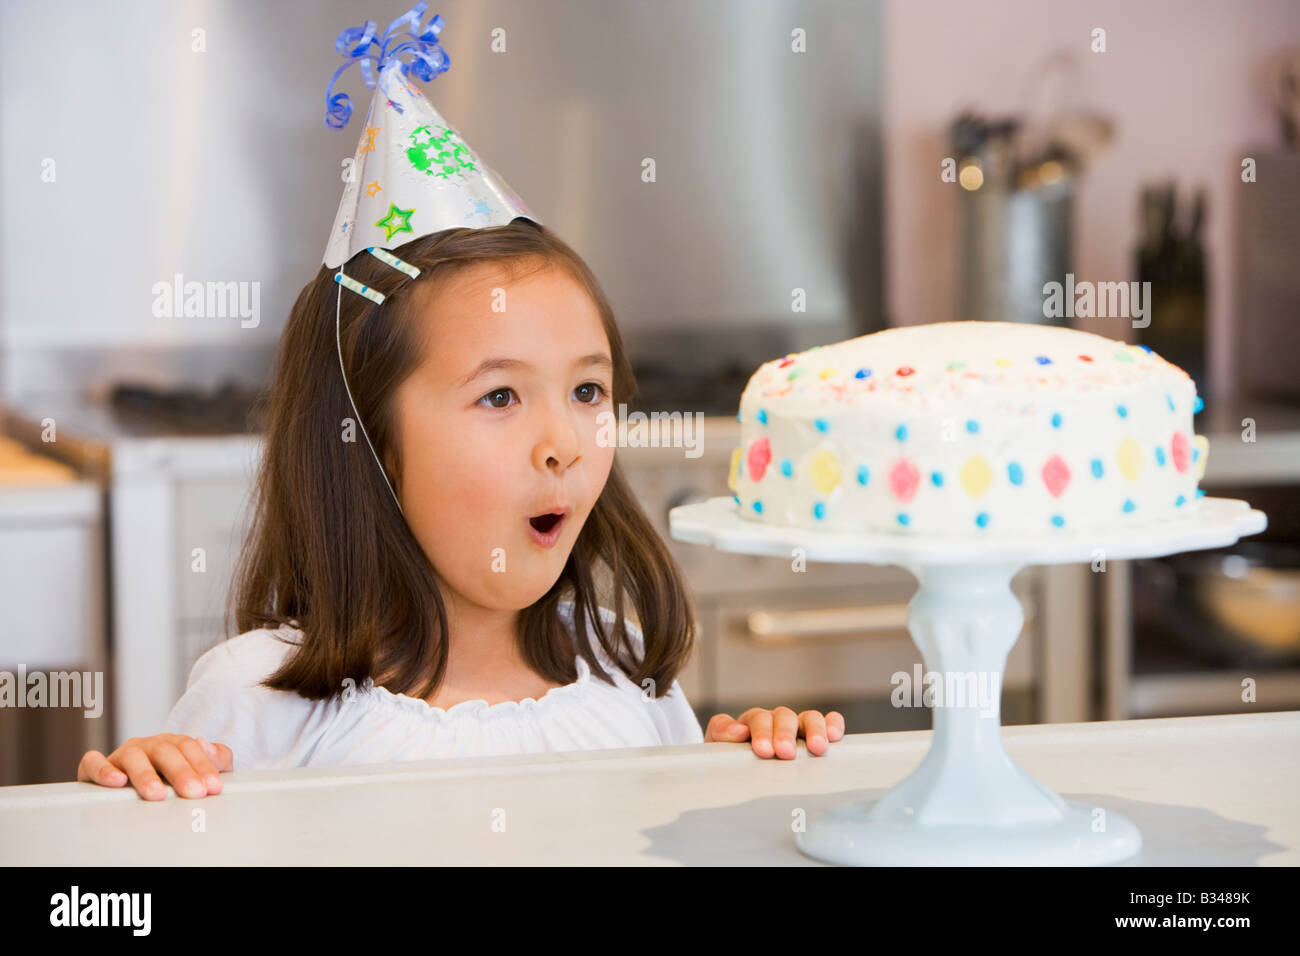 Young girl wearing party hat at kitchen counter looking at cake smiling - Stock Image